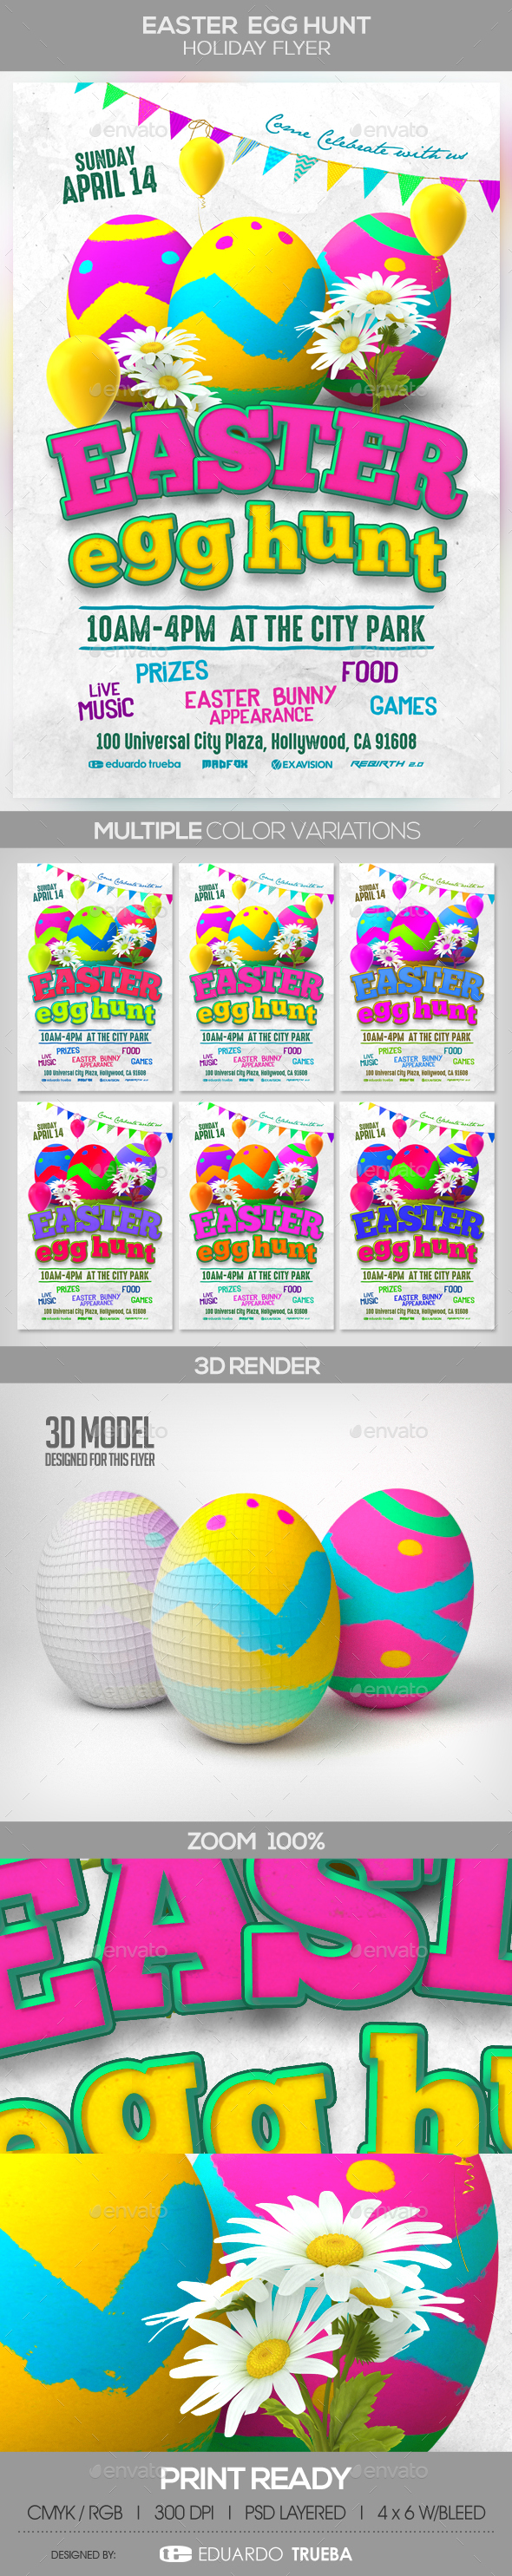 Easter Egg Hunt Holiday Flyer - Events Flyers